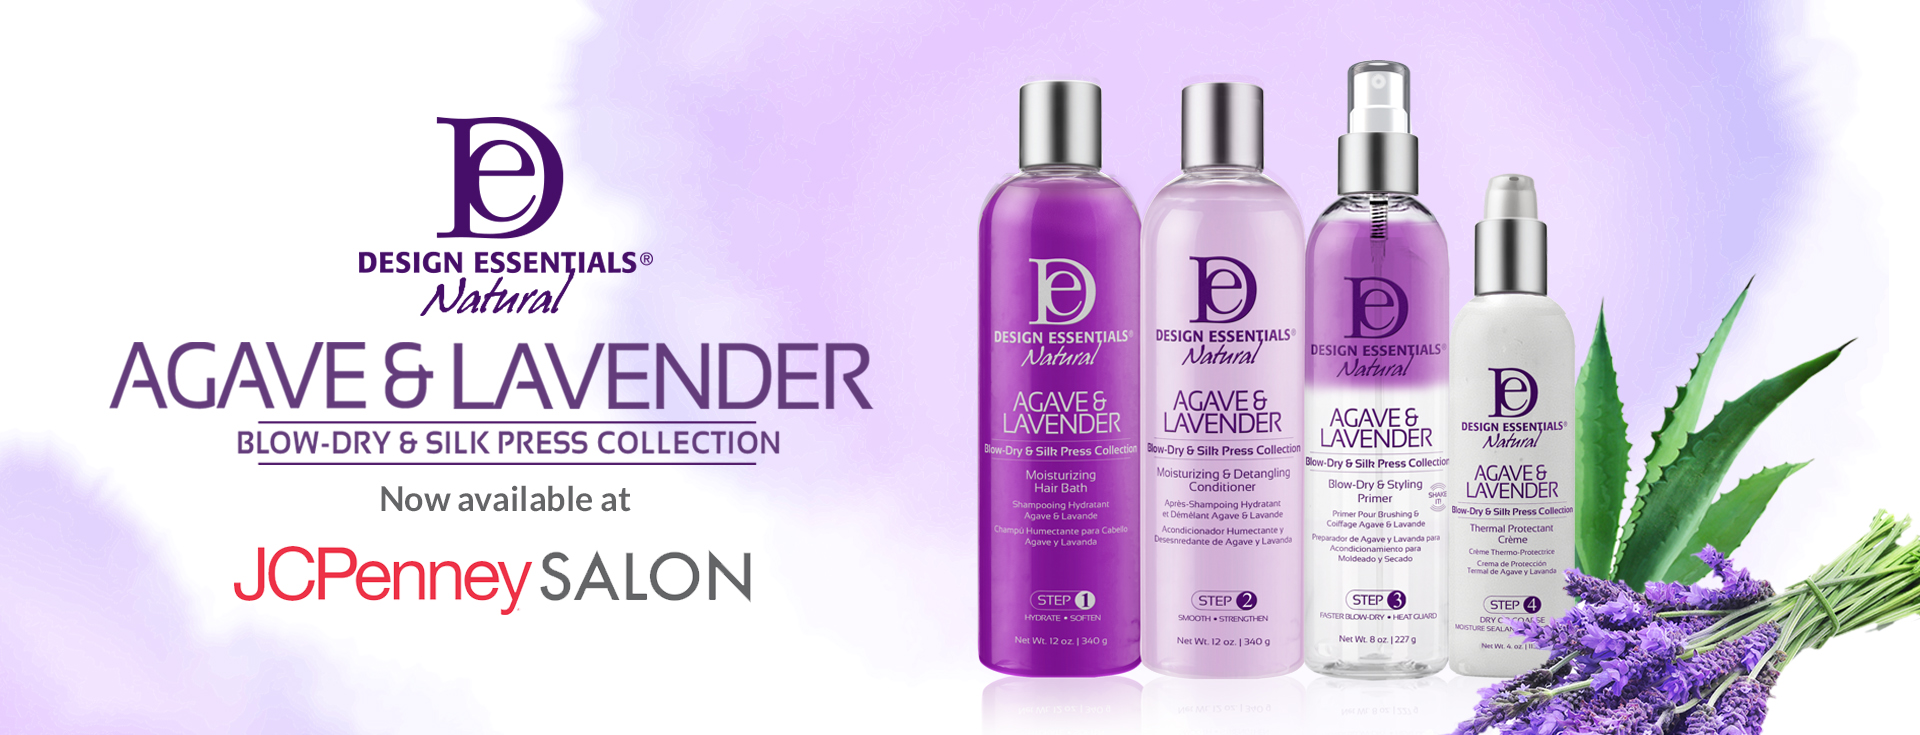 Agave and Lavender Collection at JCP